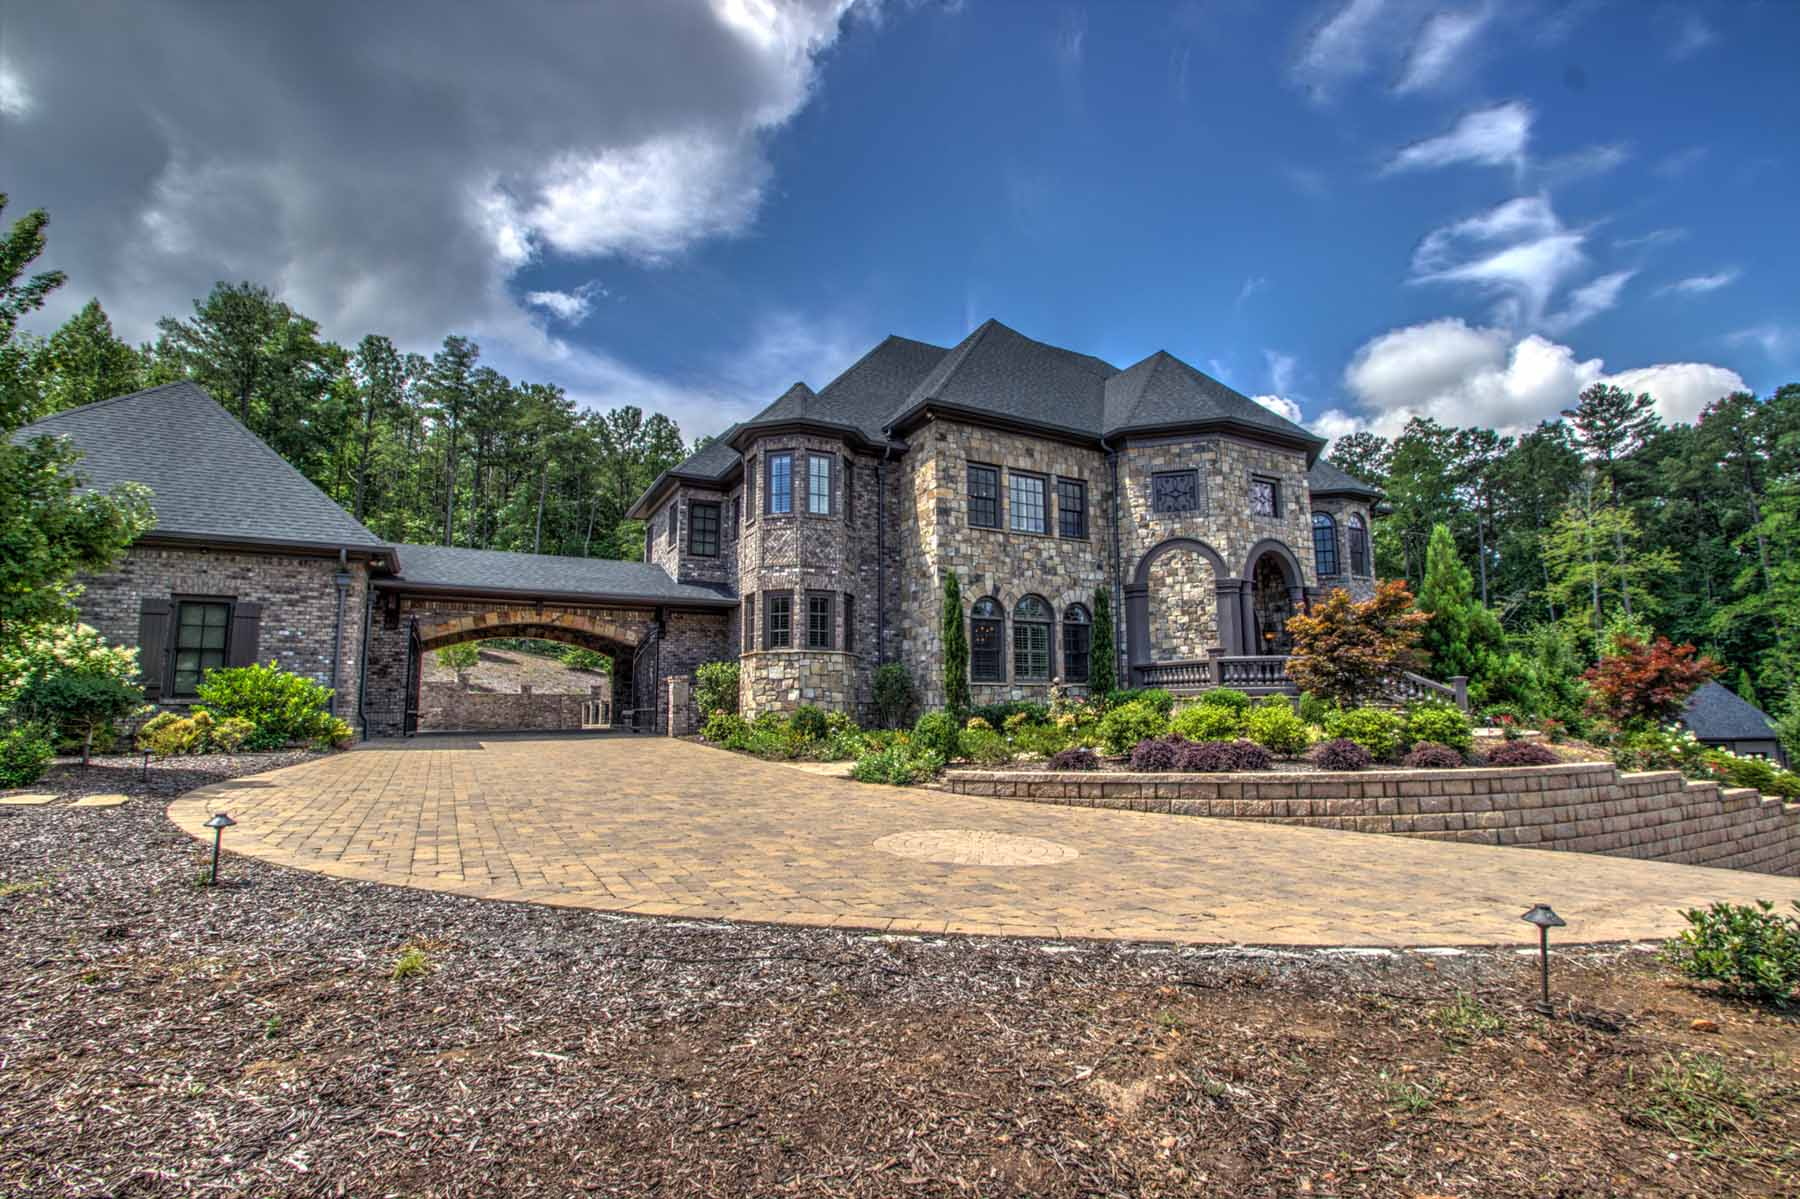 Maison unifamiliale pour l Vente à A Sophisticated Woodstock Masterpiece 115 Alice Bridge Way Woodstock, Georgia 30188 États-Unis